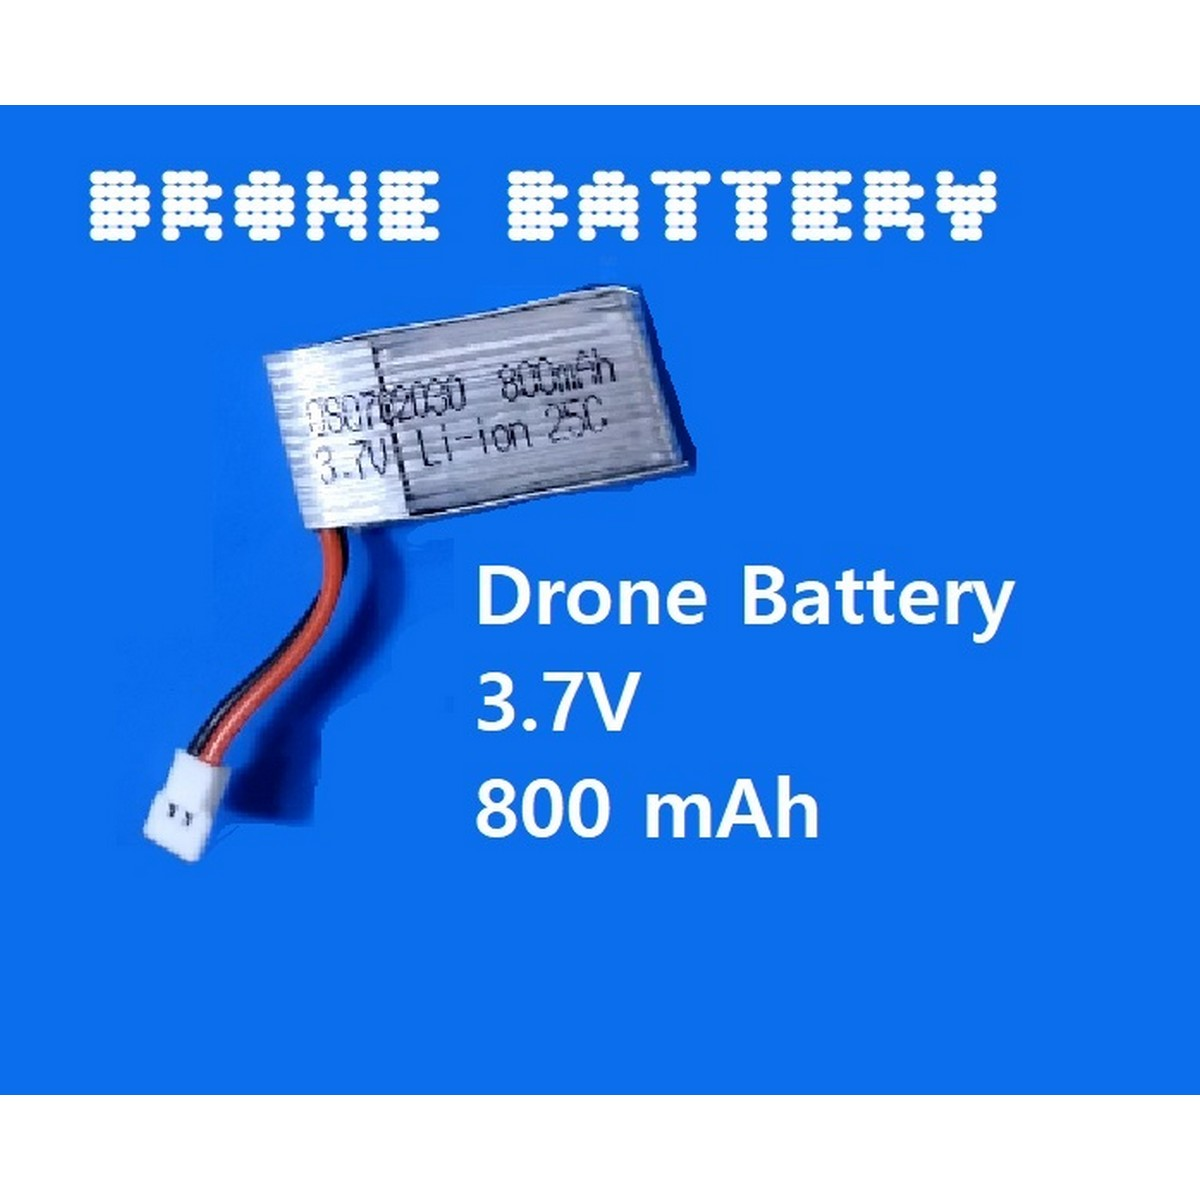 3.7V 800mAh 25C Battery for drones toys and DIY projects -Drone Battery 702030